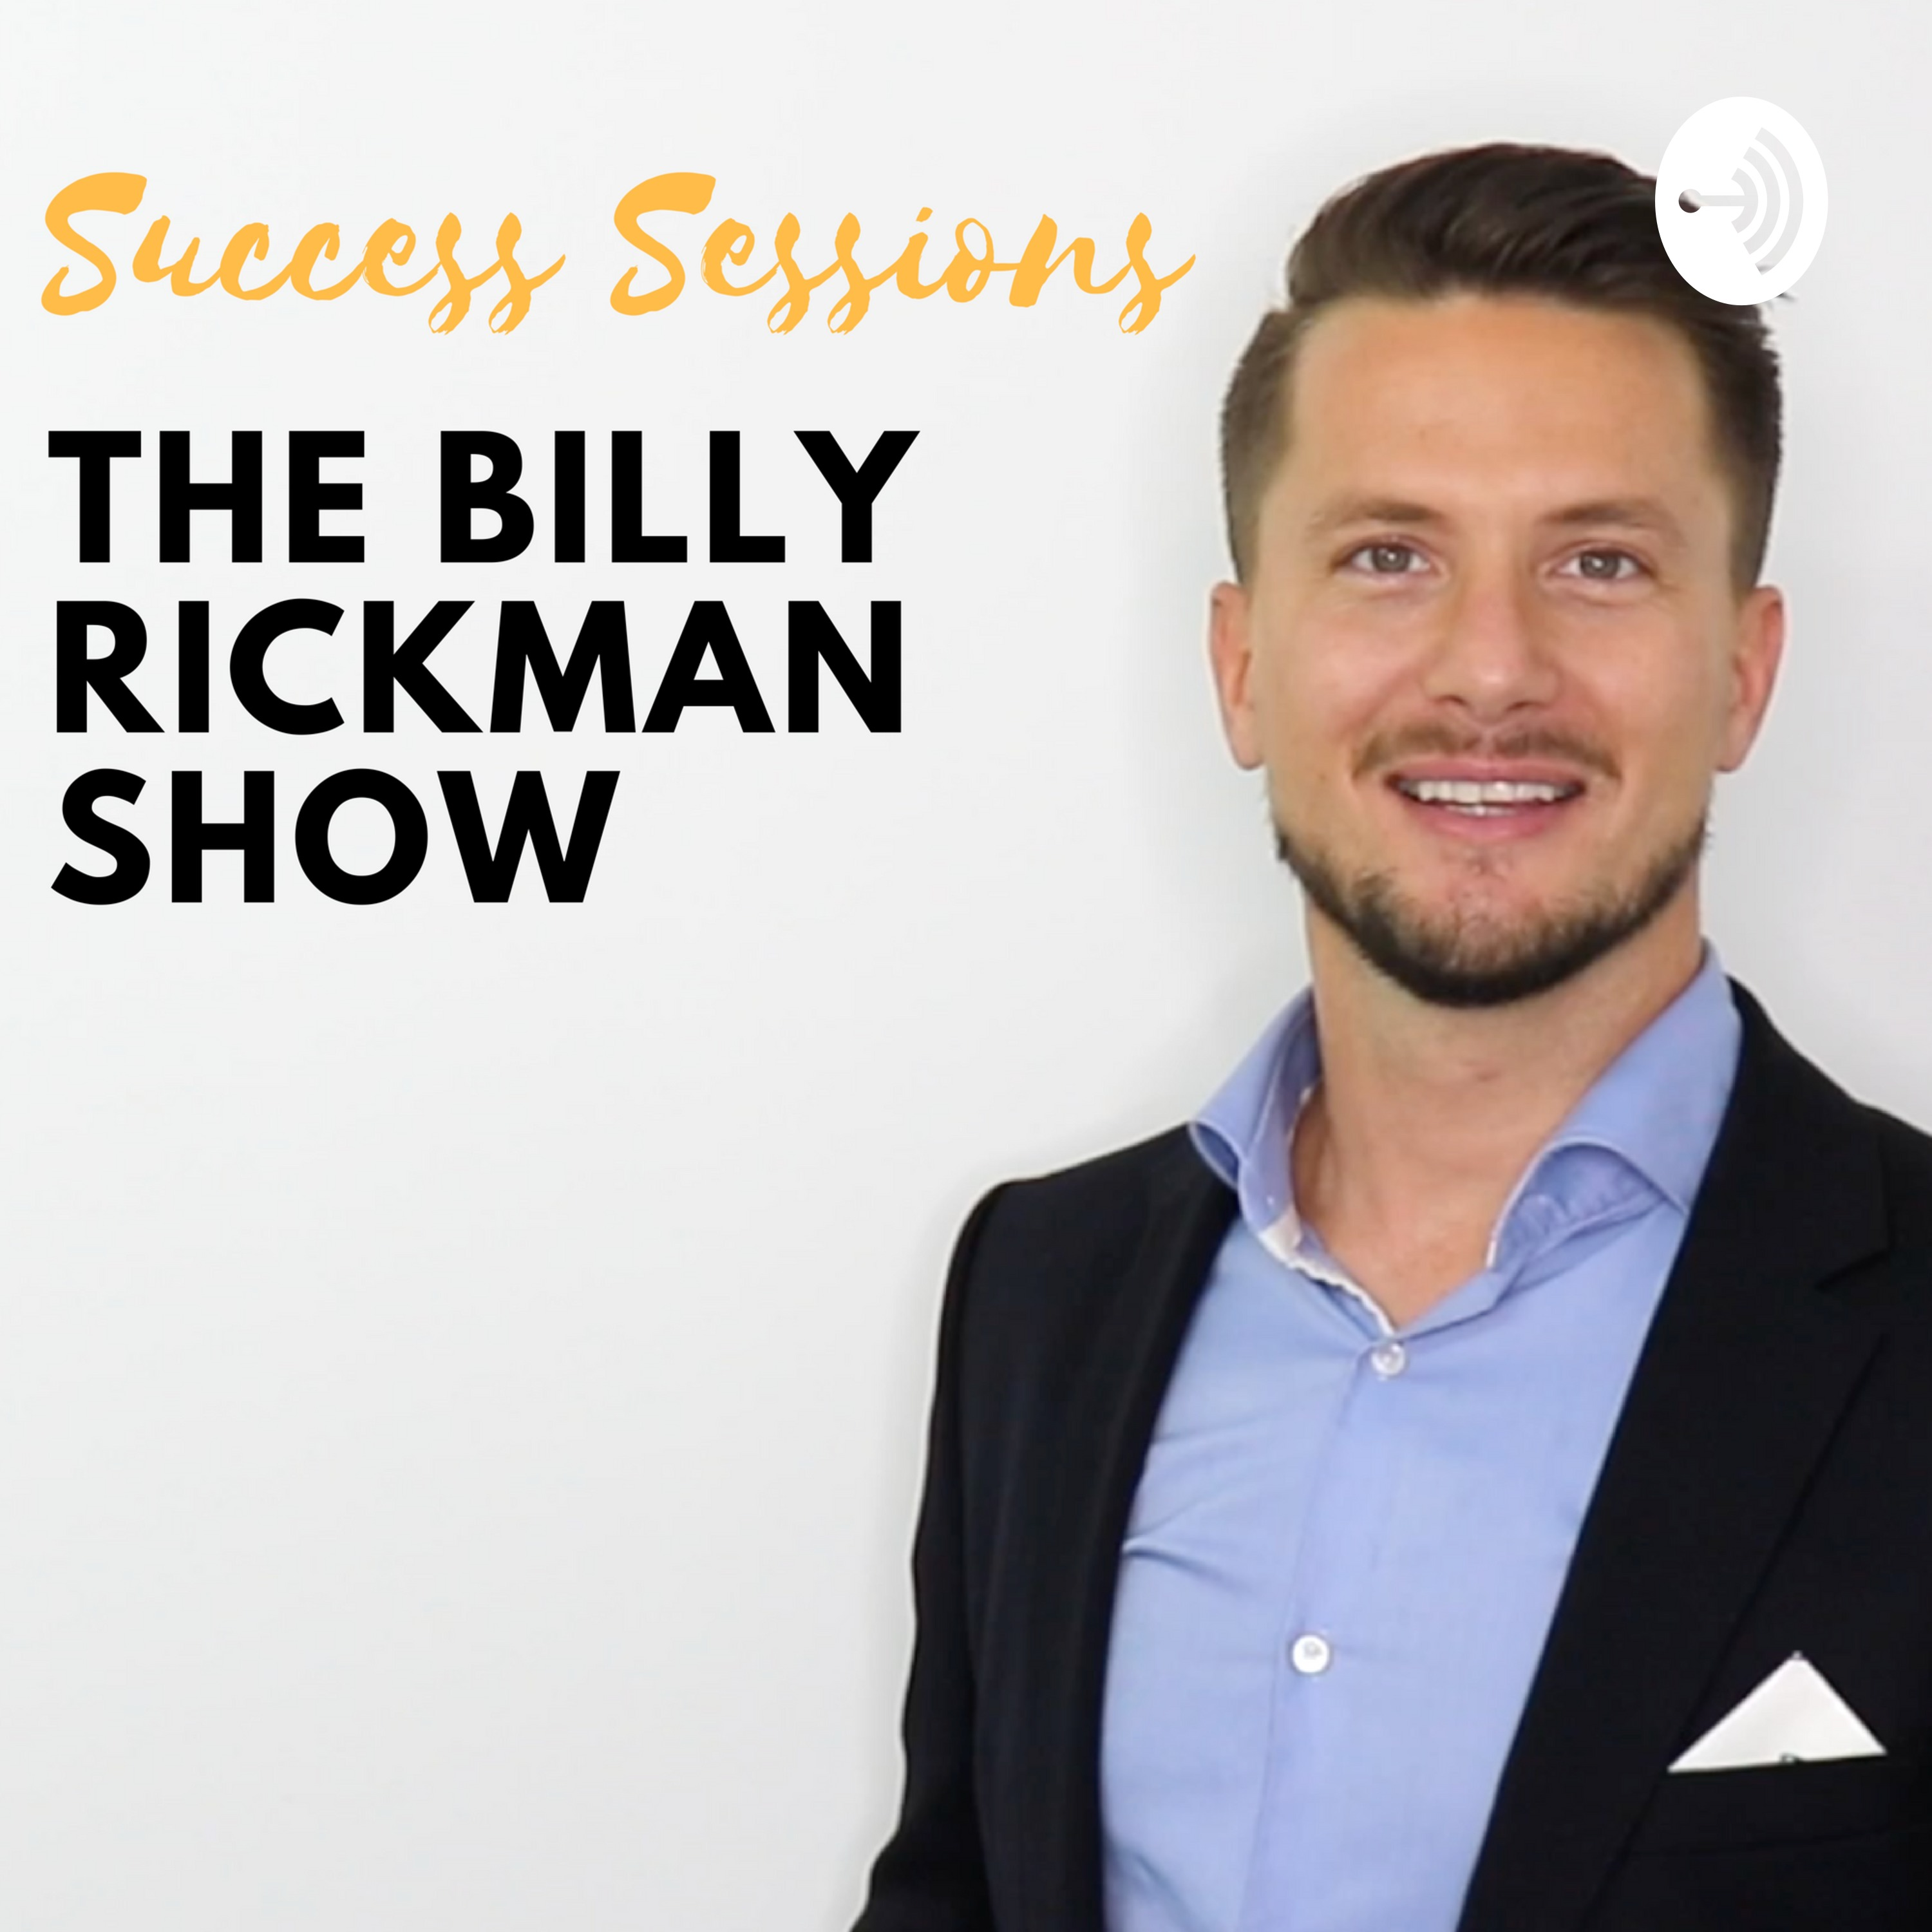 The Billy Rickman Show Podcast